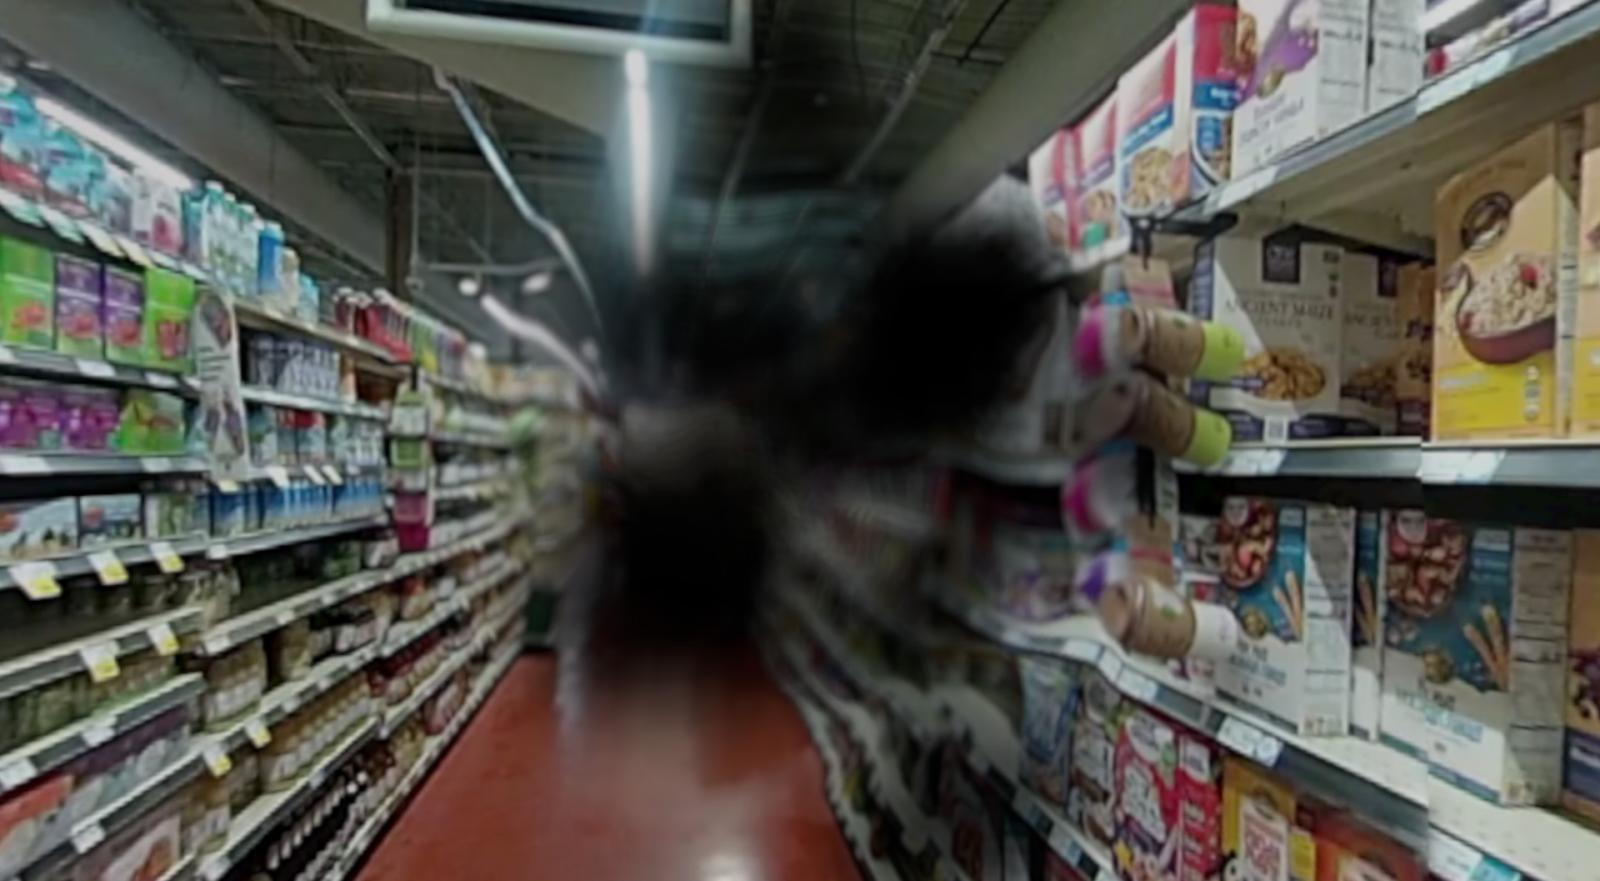 A simulation shows what the grocery store aisle looks like to someone with age-related macular degeneration. AMD damages the macula, a small spot near the center of the eye's light-sensing retina. The macula lets us see objects that are straight ahead — it's the part of the eye used for sharp, central vision.